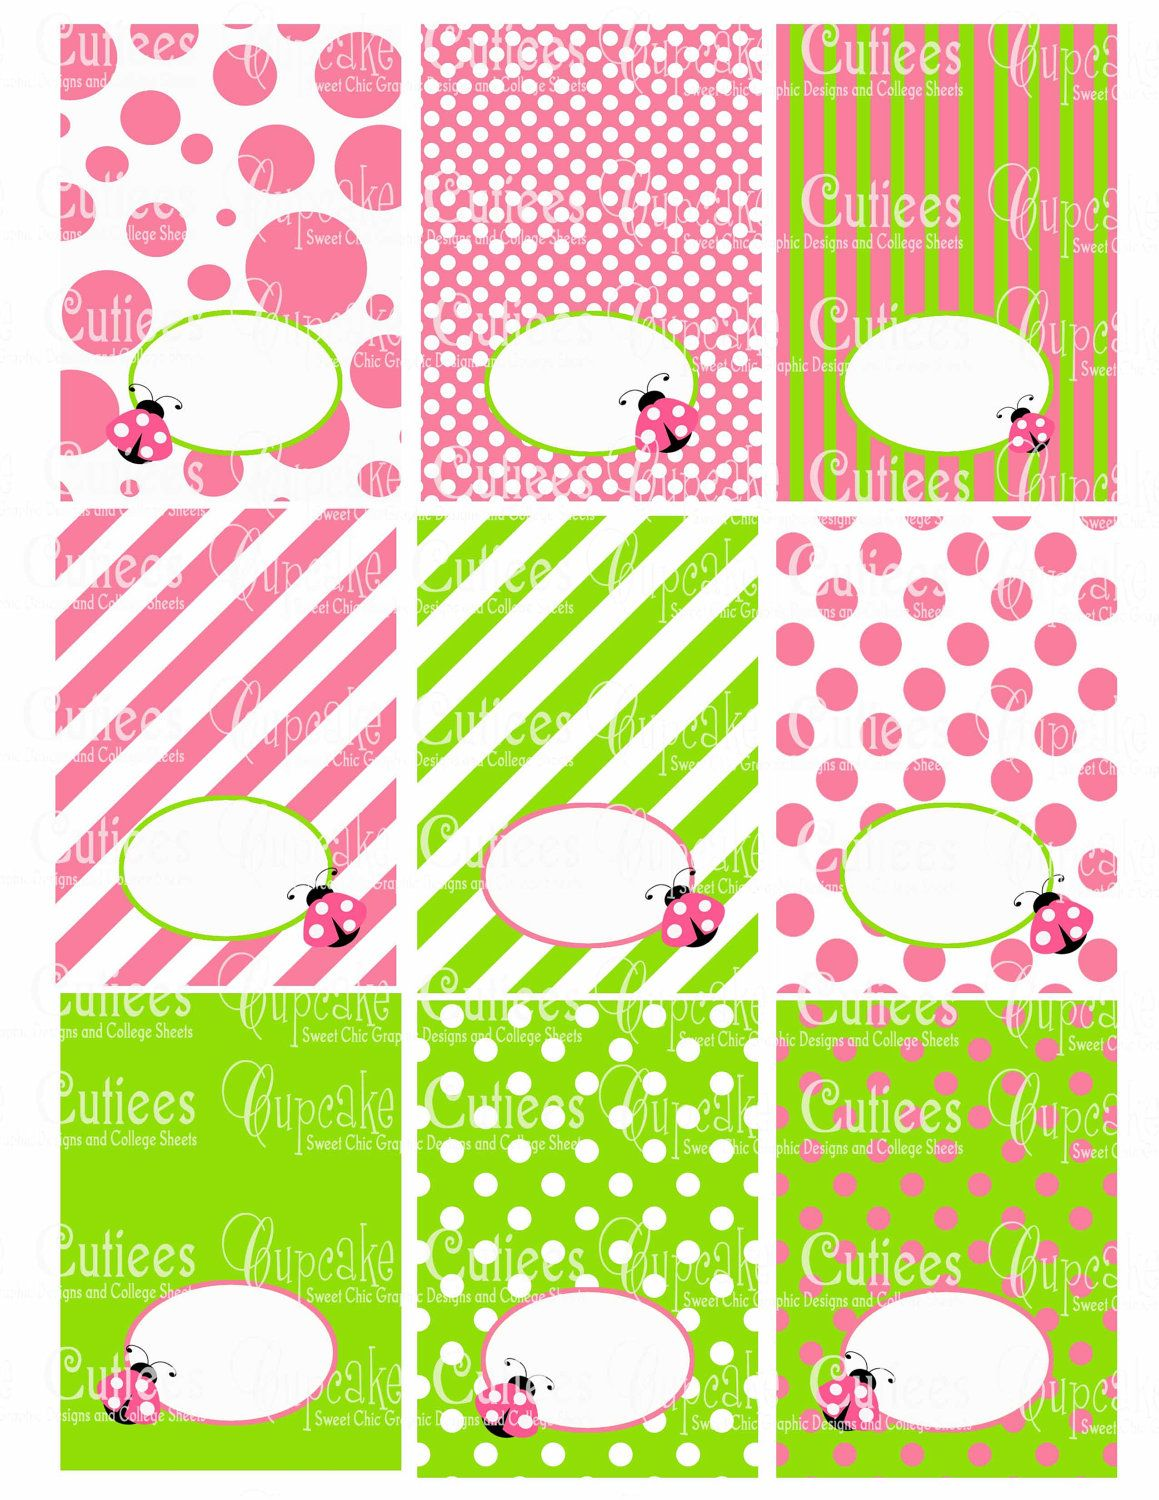 Green and pink lady bug foldover digital collage table tents n food